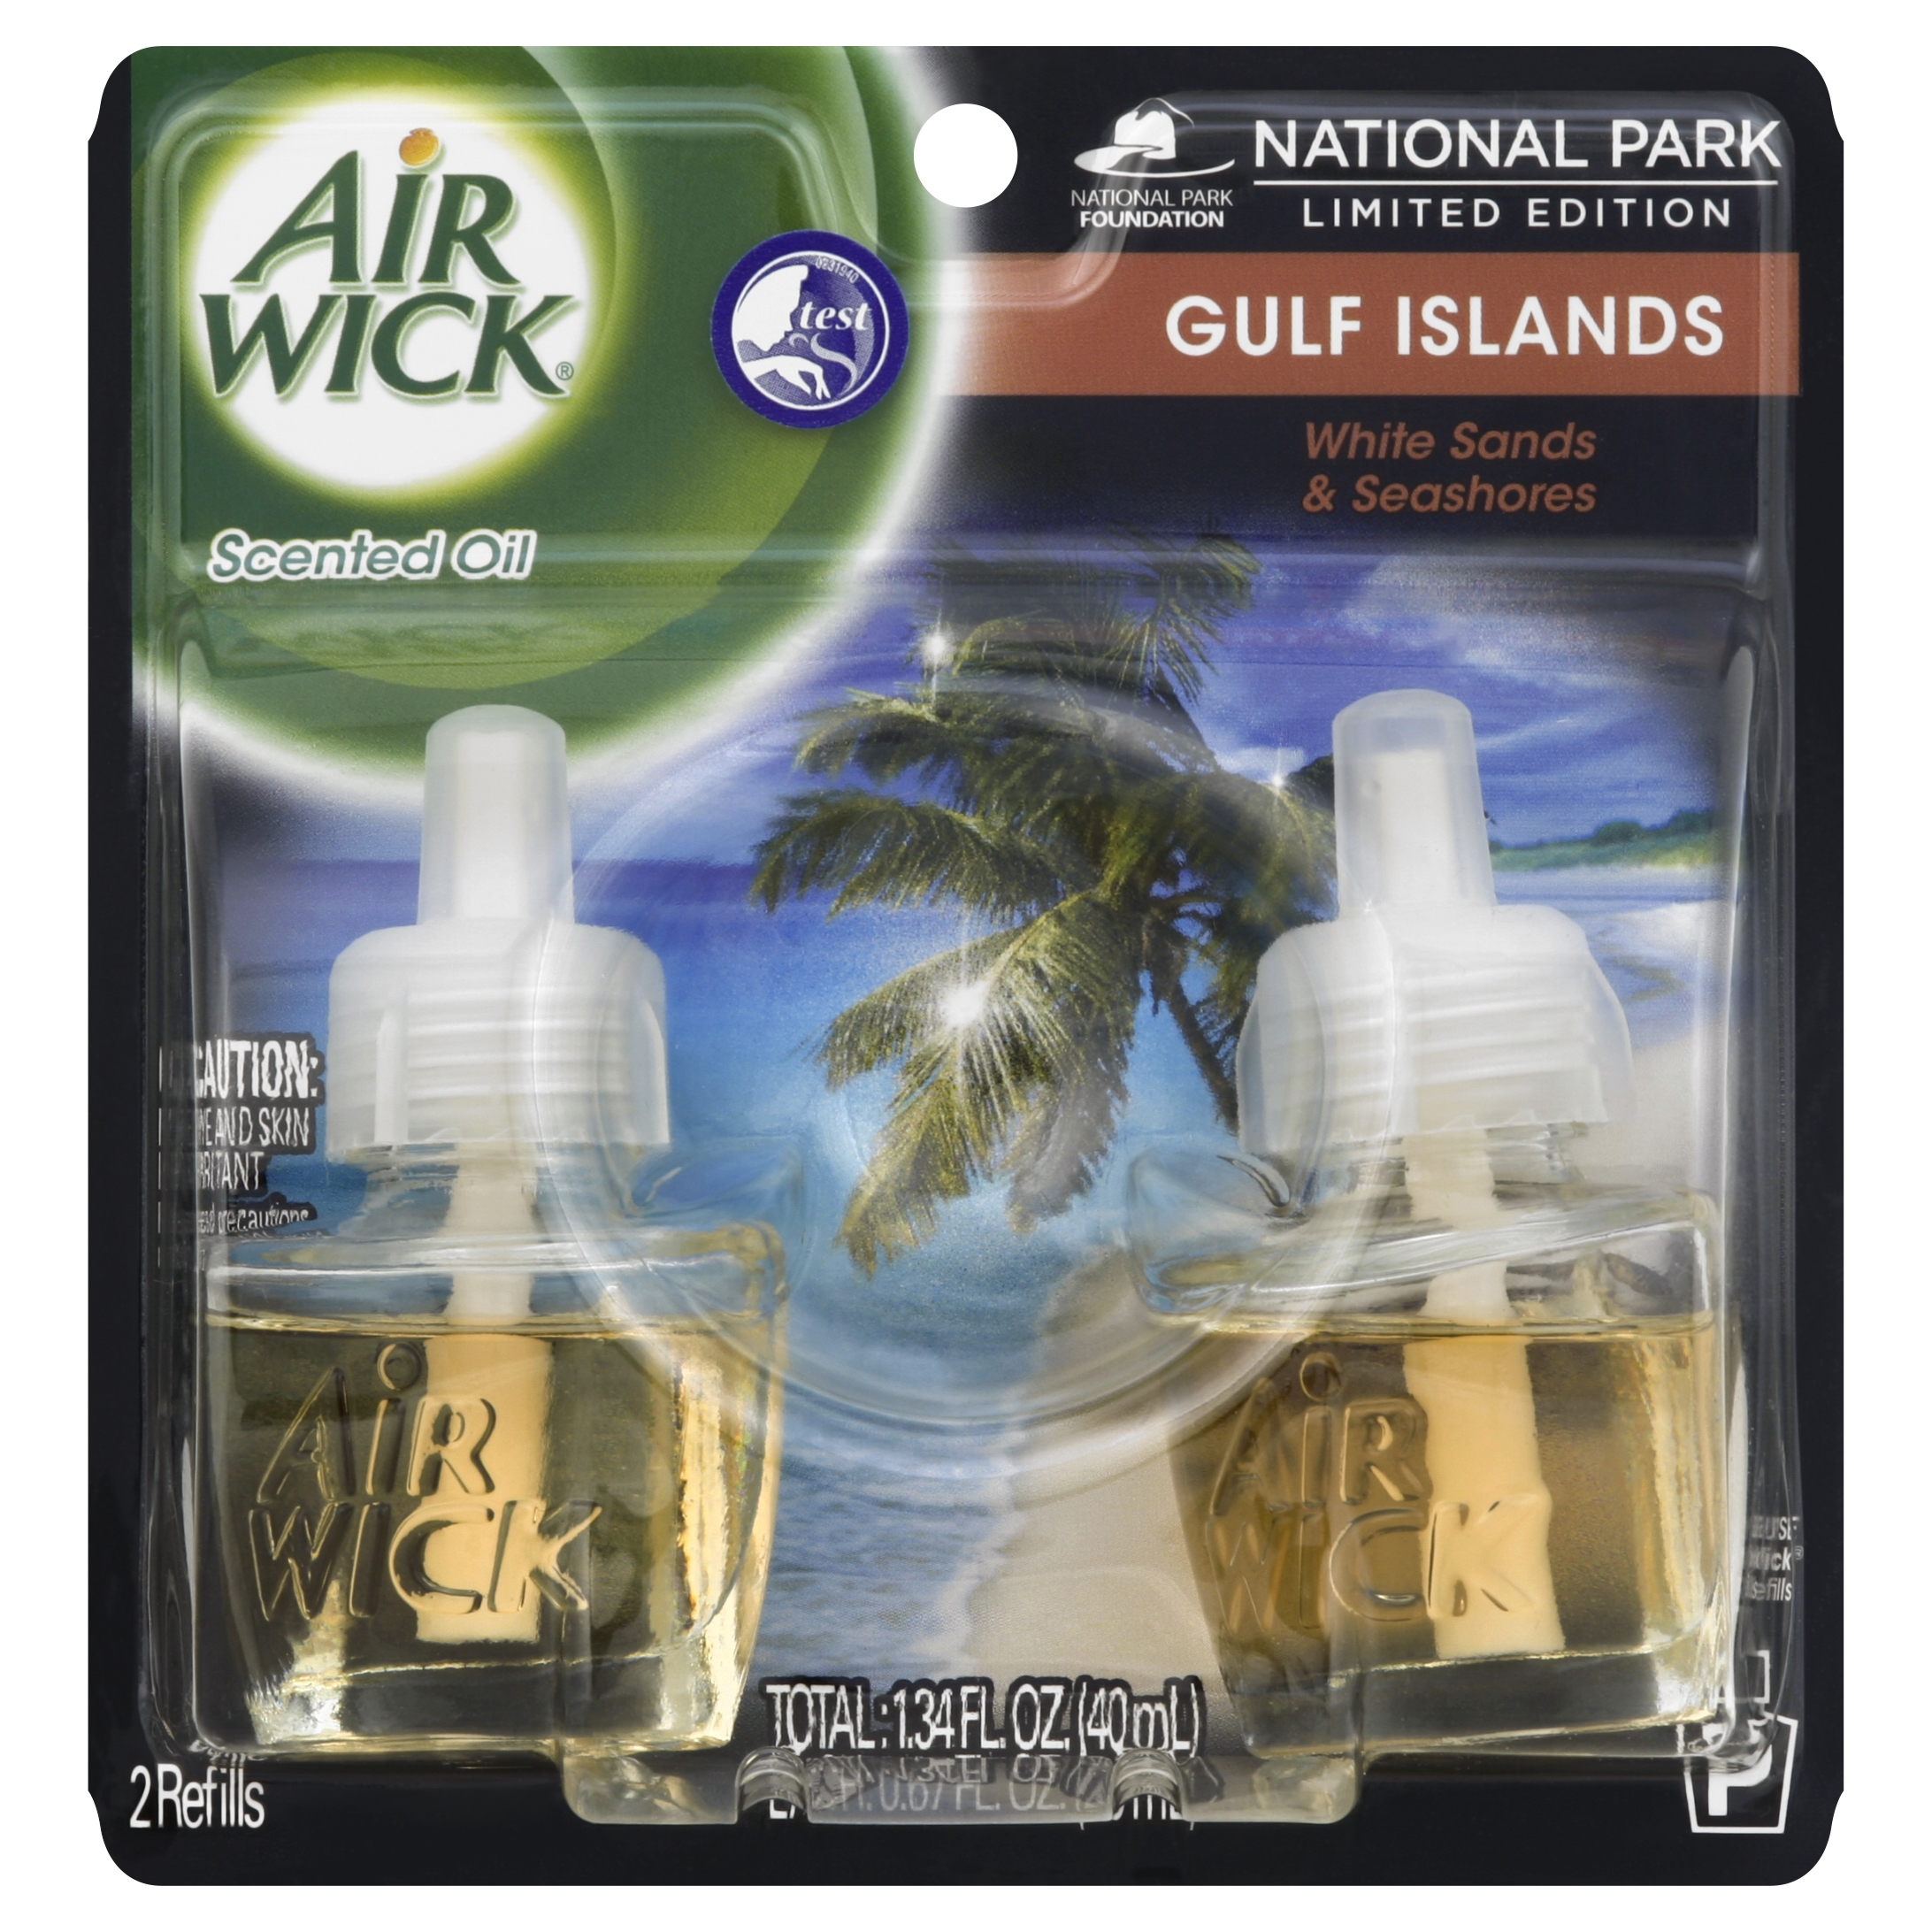 Air Wick Scented Oil Air Freshener, National Park Collection, Gulf Islands, Twin Refills, 0.67 Ounce